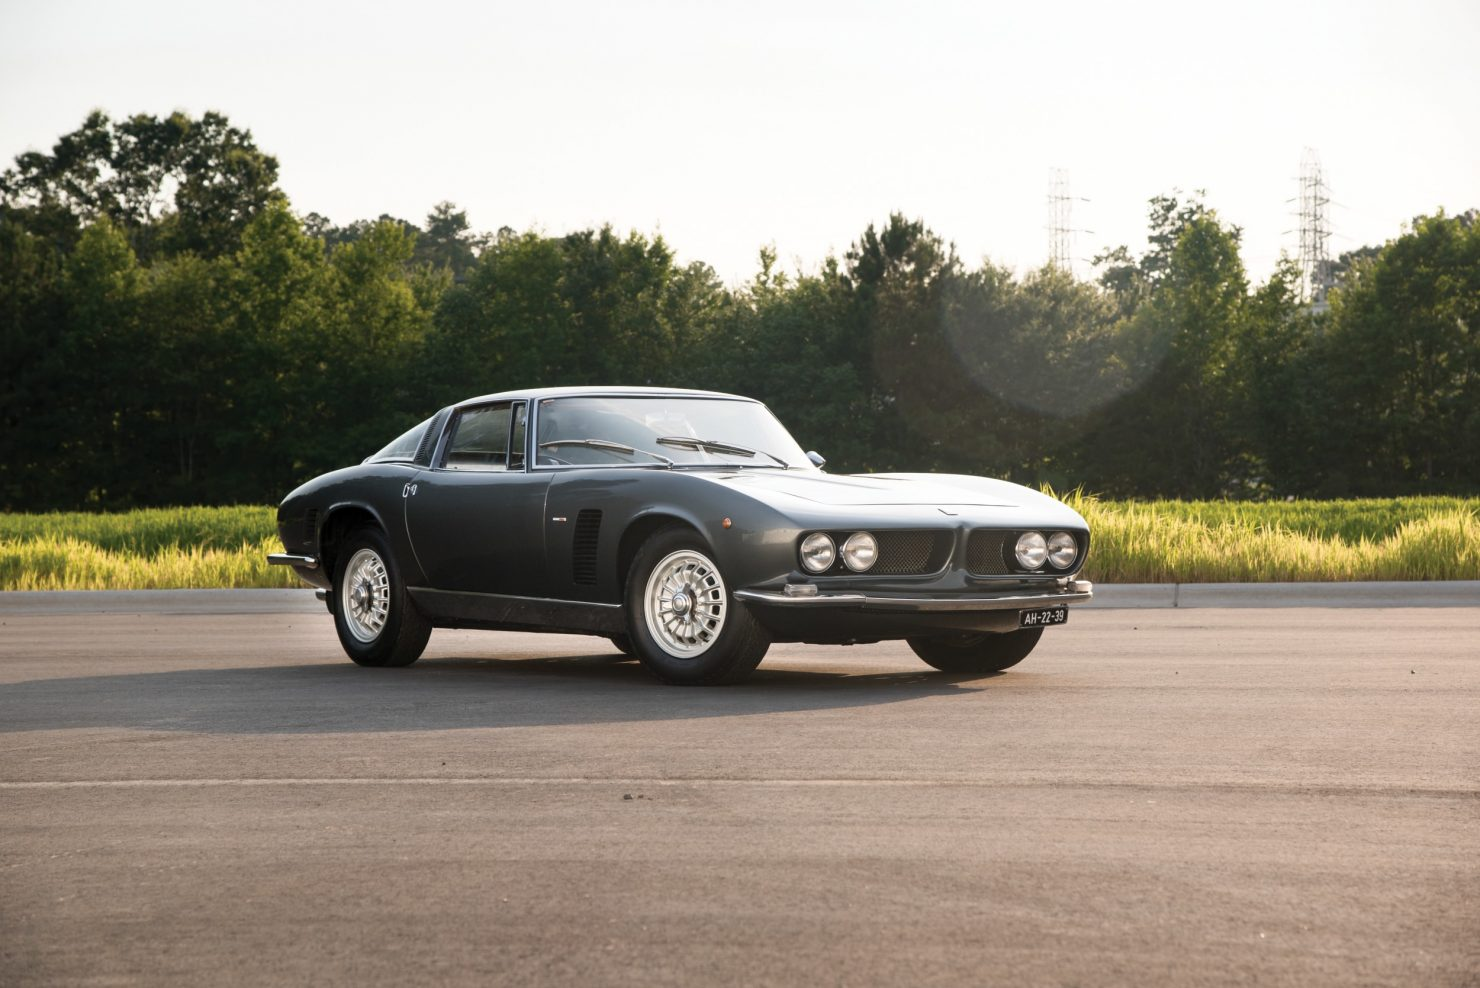 iso grifo car 1 1480x988 - 1966 Iso Grifo GL Series I